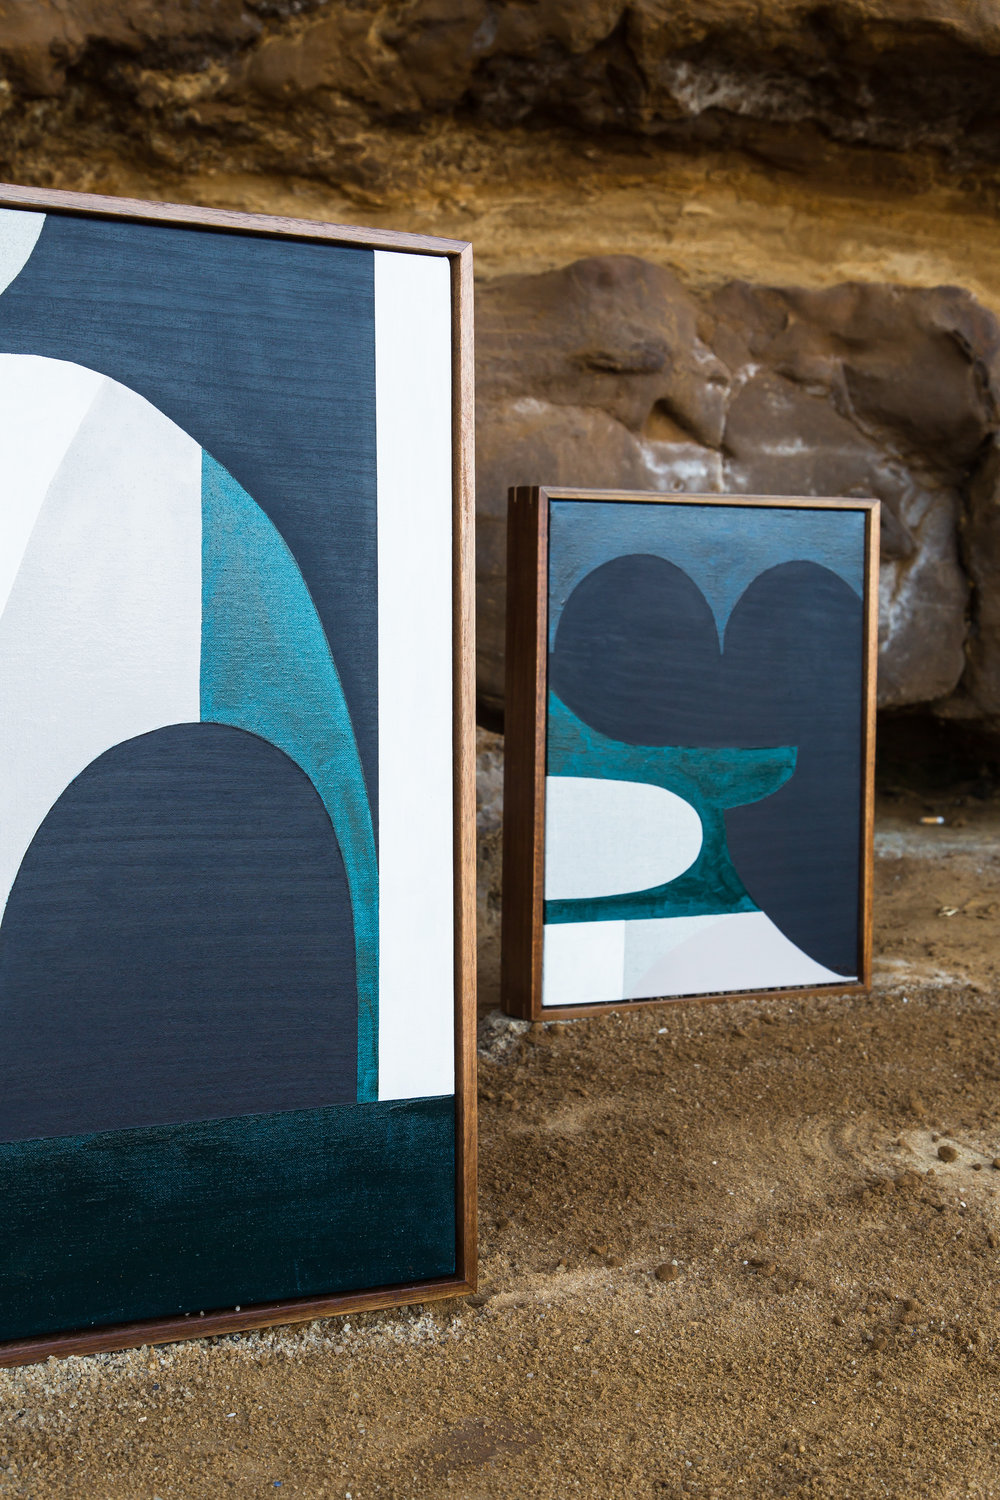 Original Artworks; Latitude (left) The Whaler (right) shot on location at Red Bluff Cliffs, Black Rock, Victoria. Photograph by Suzi Appel.